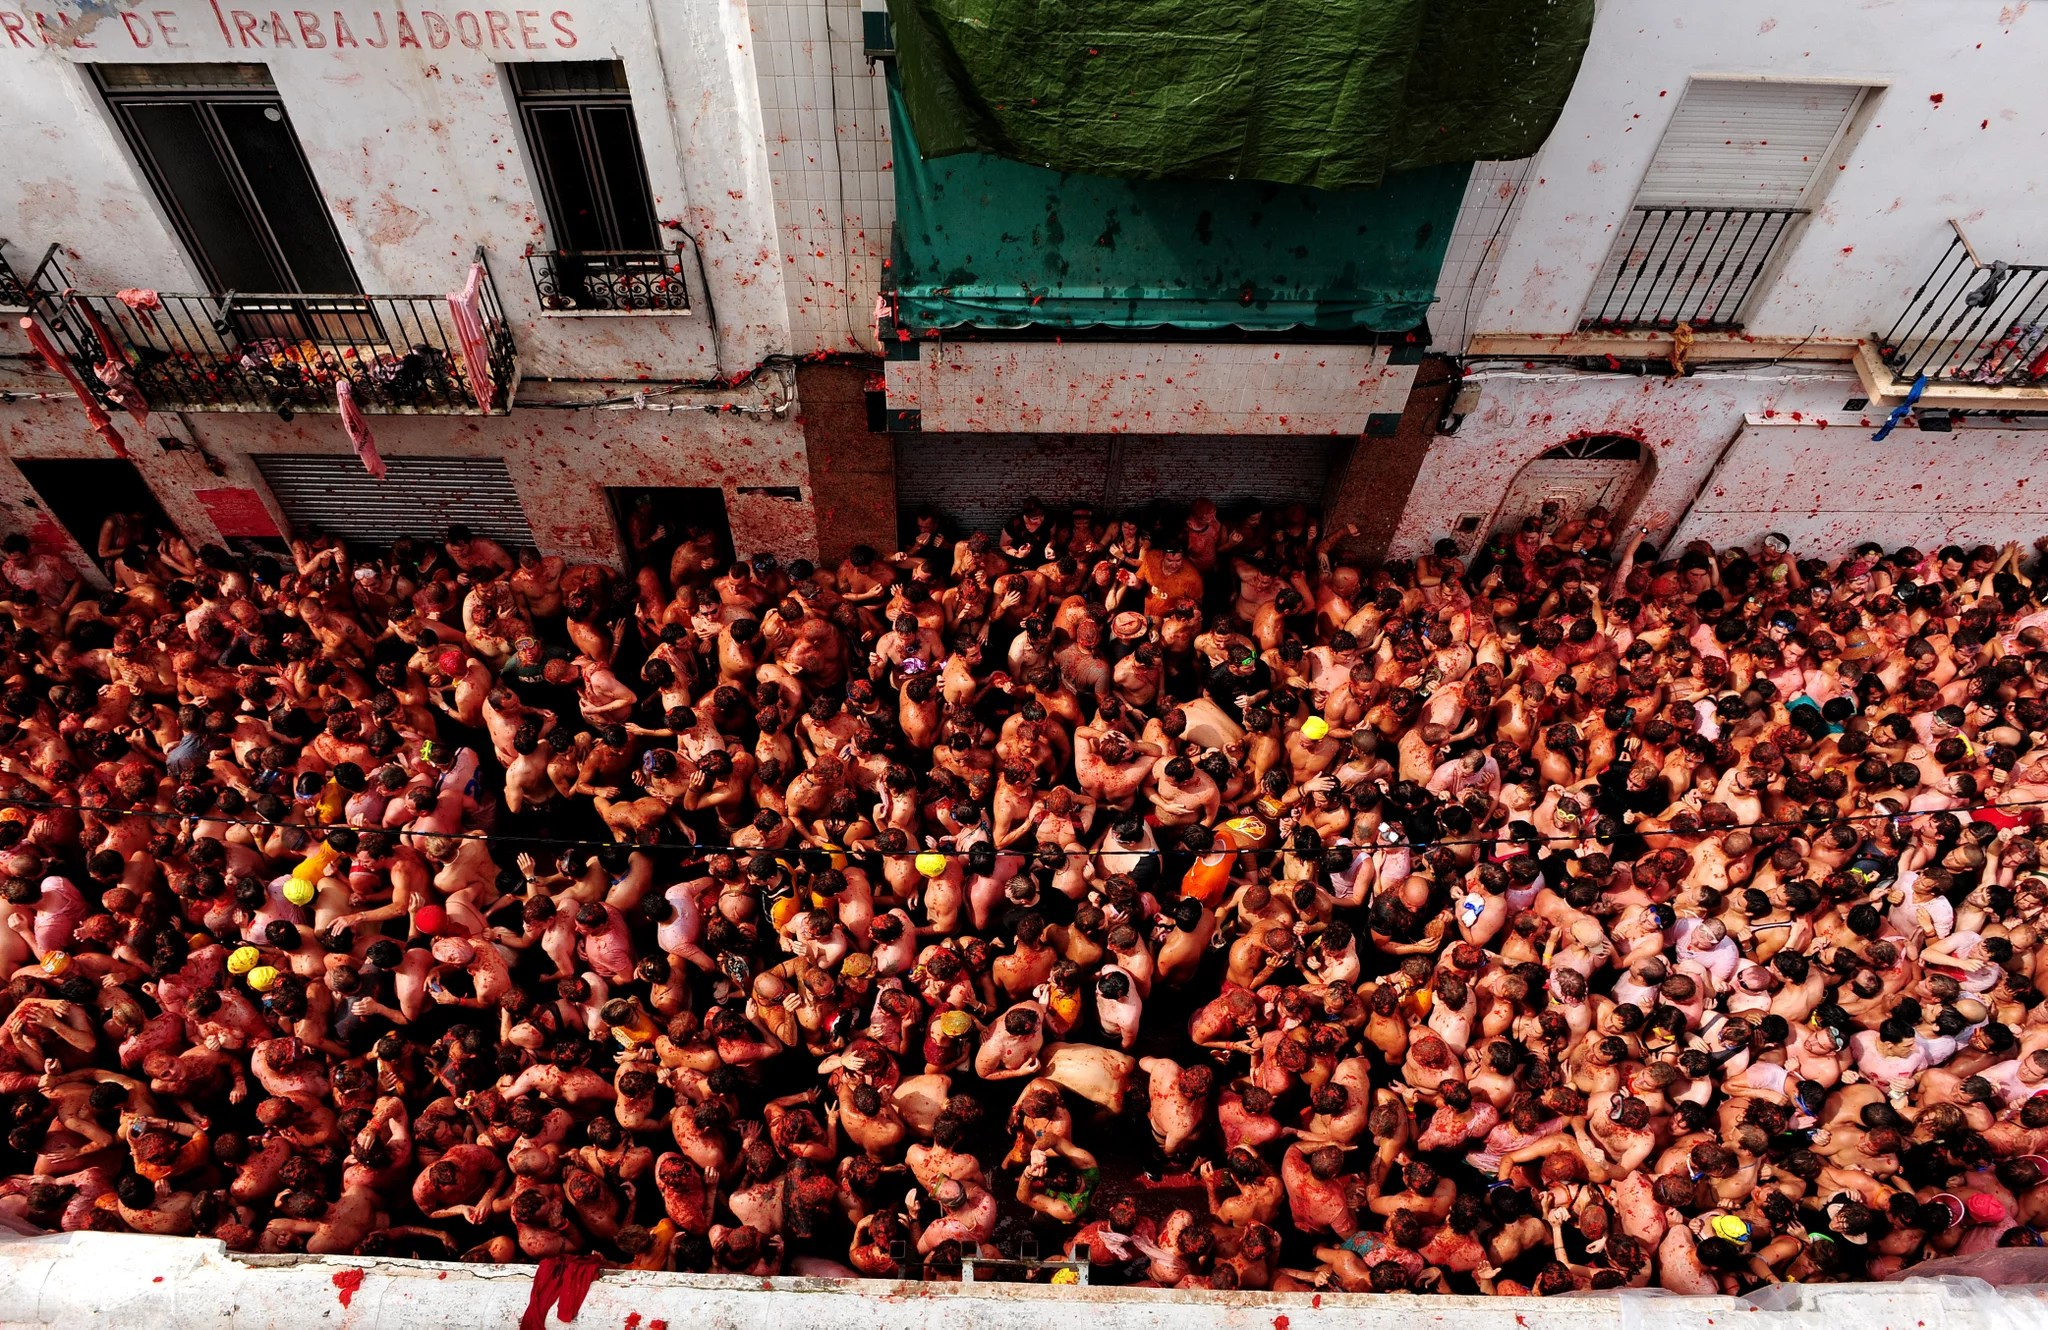 Annual La Tomatina Tomato Fight In Valencia Spain